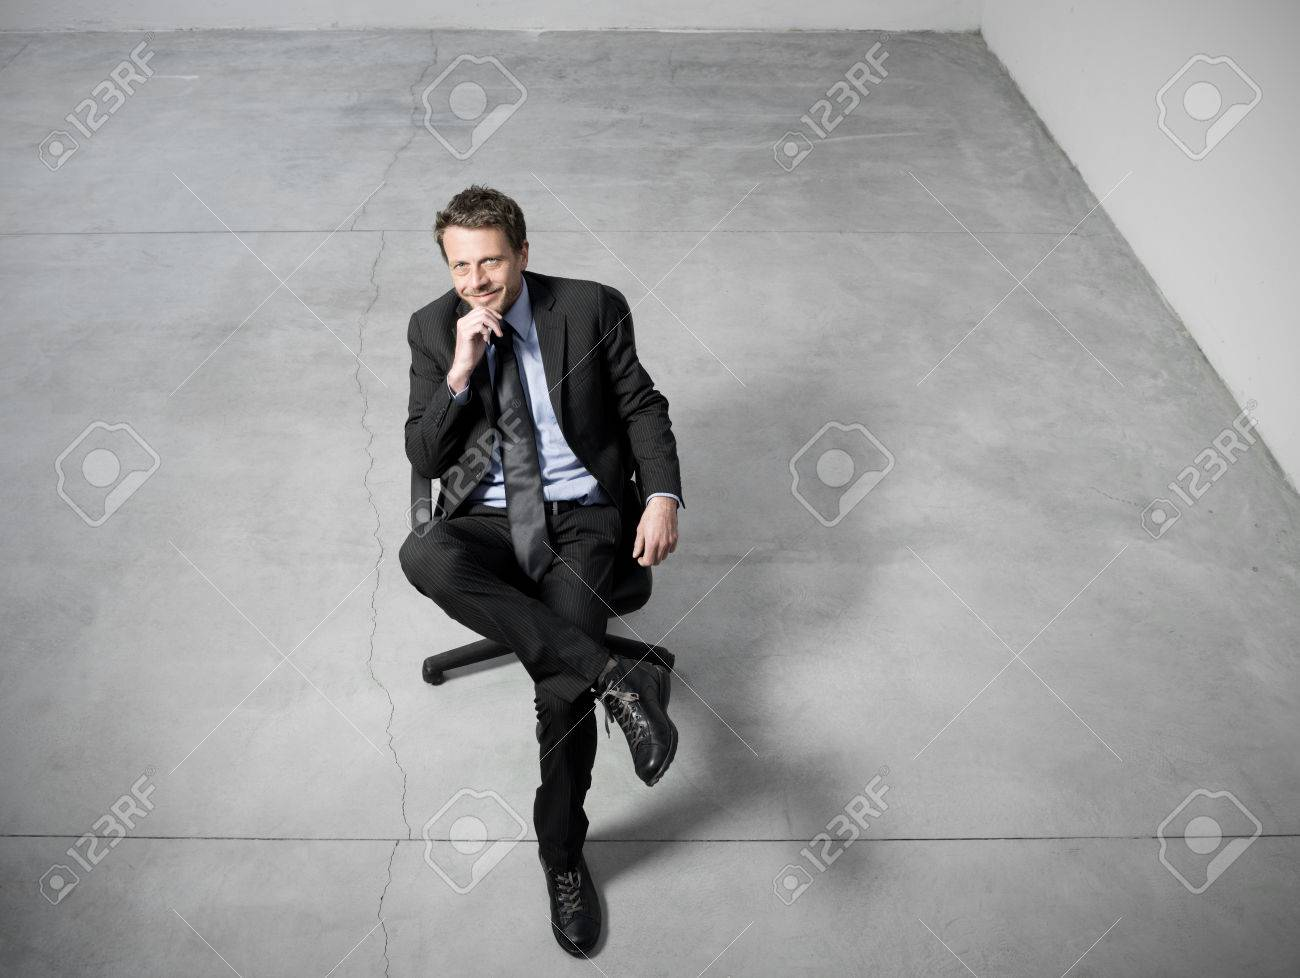 Smiling businessman sitting on an office chair with hand on chin against concrete floor background. Stock Photo - 27916030